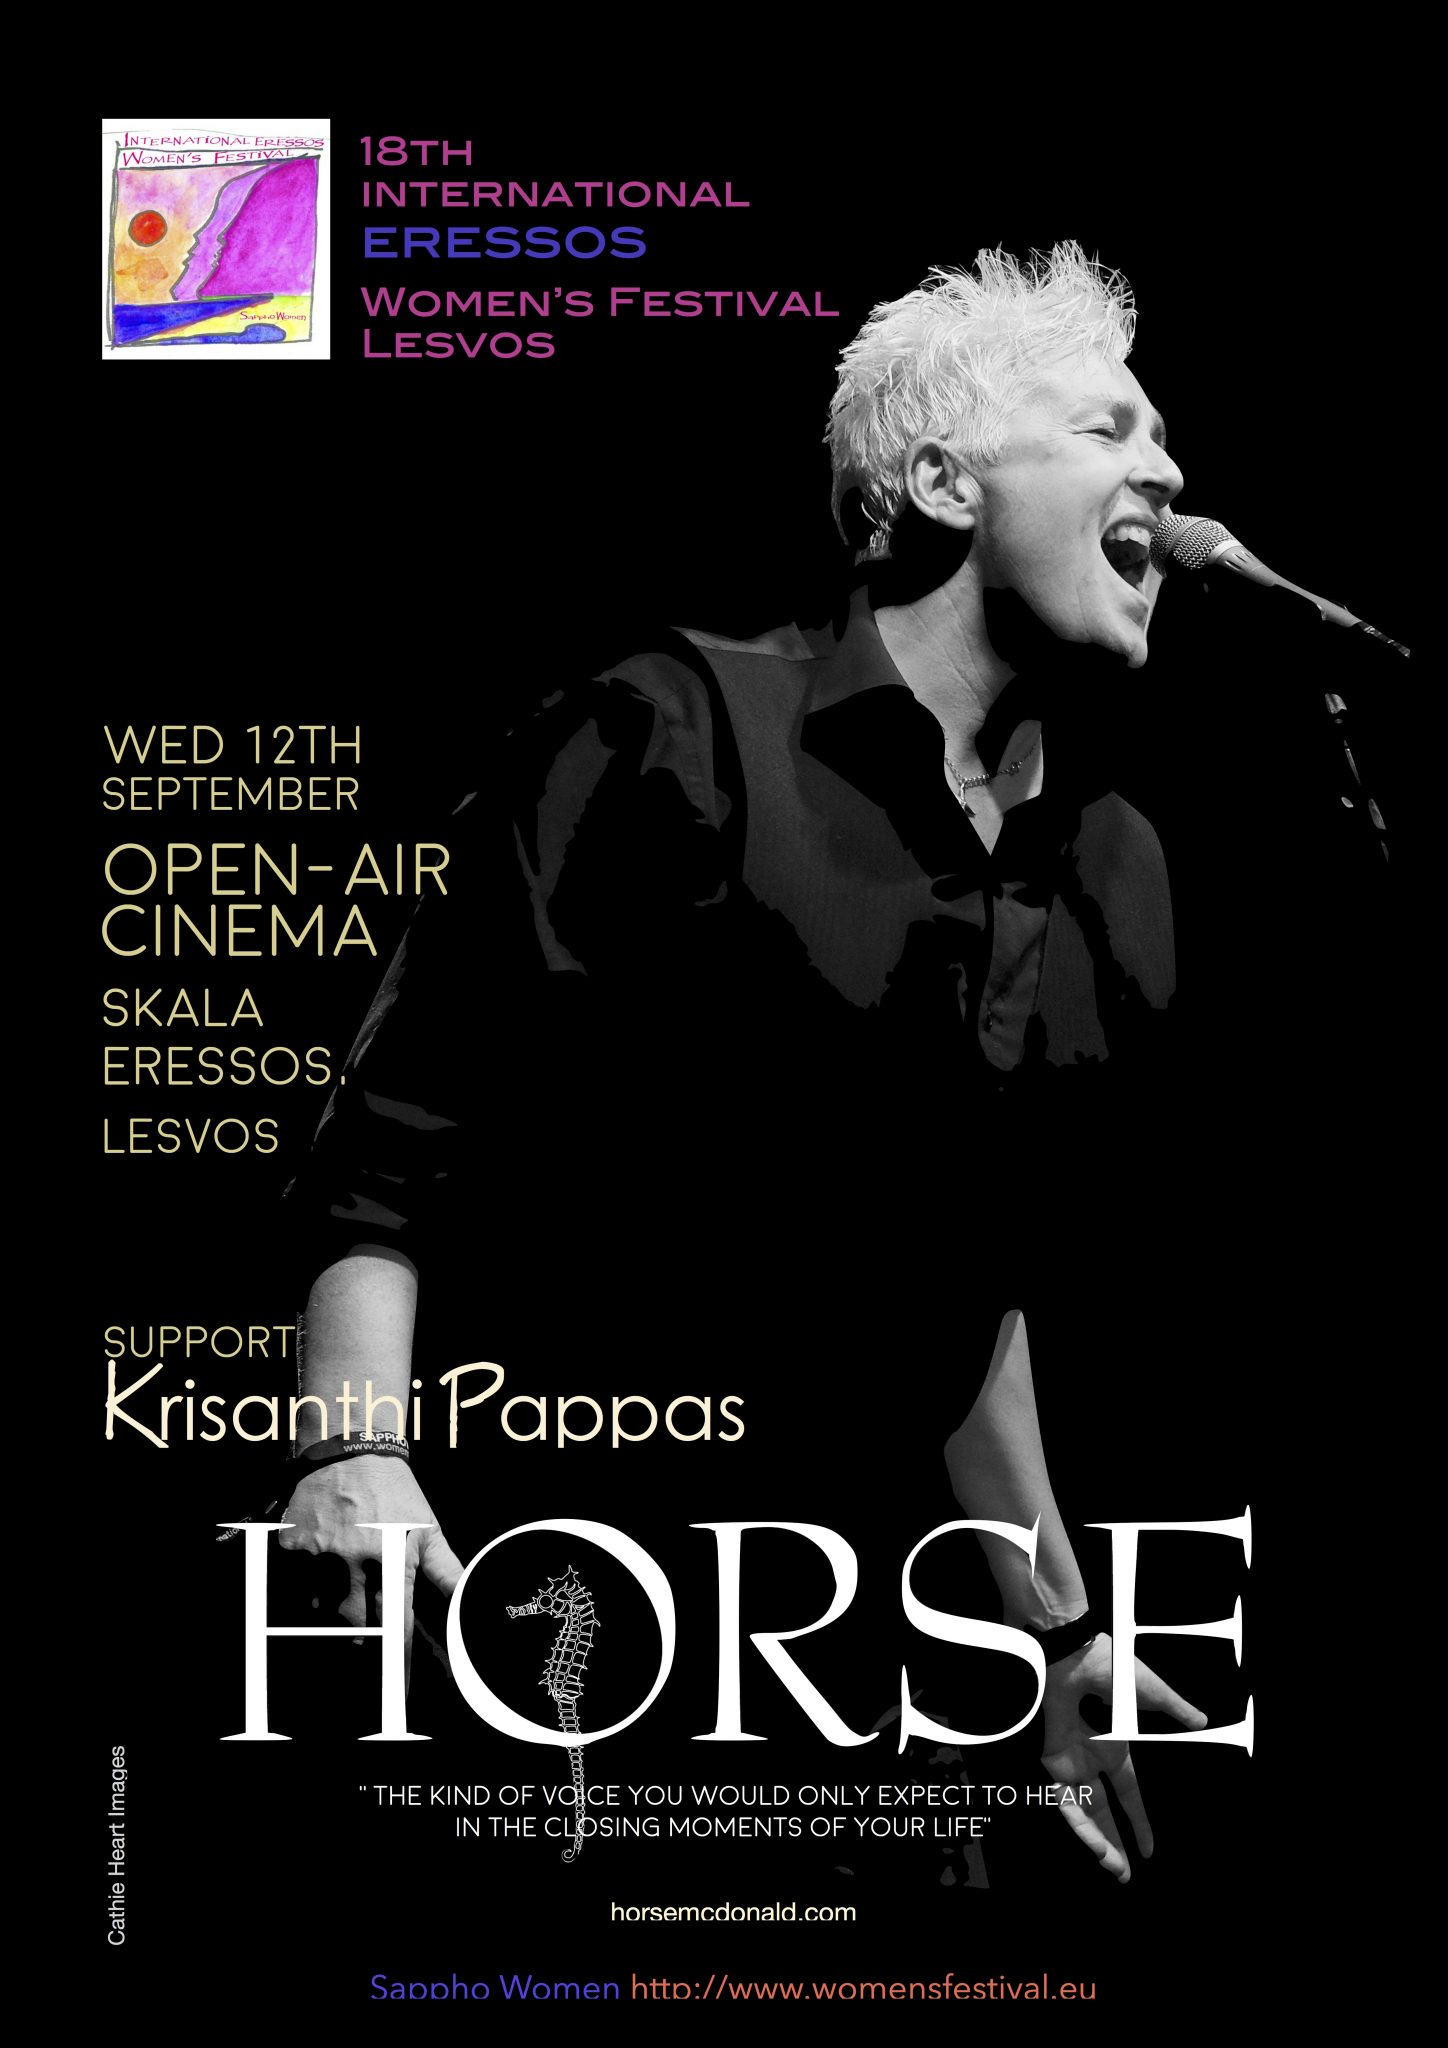 Horse & Krisanthi Pappas in Concert @ Cine Sappho Magicnights